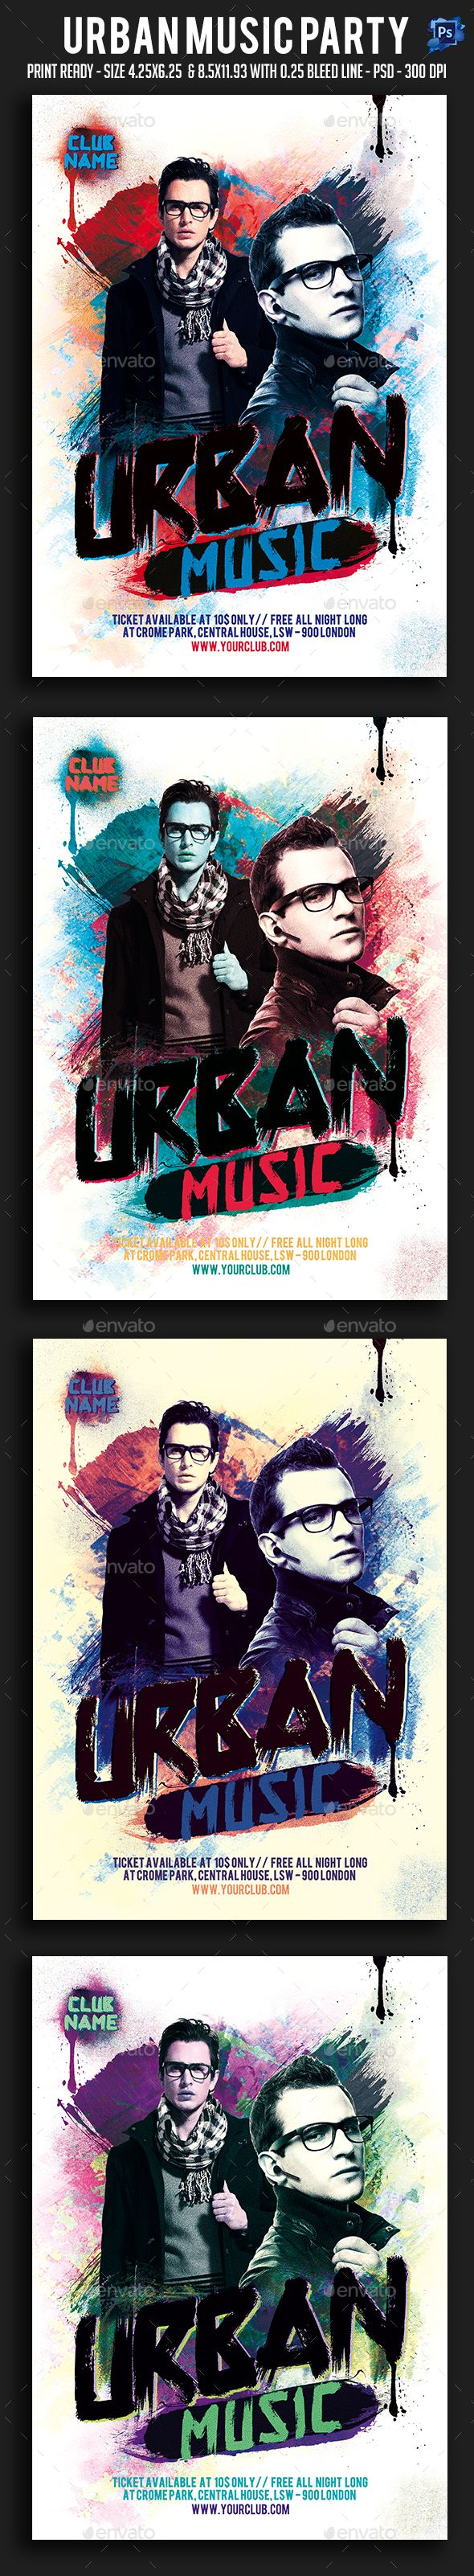 Urban Music #Party #Flyer - Clubs & Parties #Events Download here: https://graphicriver.net/item/urban-music-party-flyer/19541781?ref=alena994